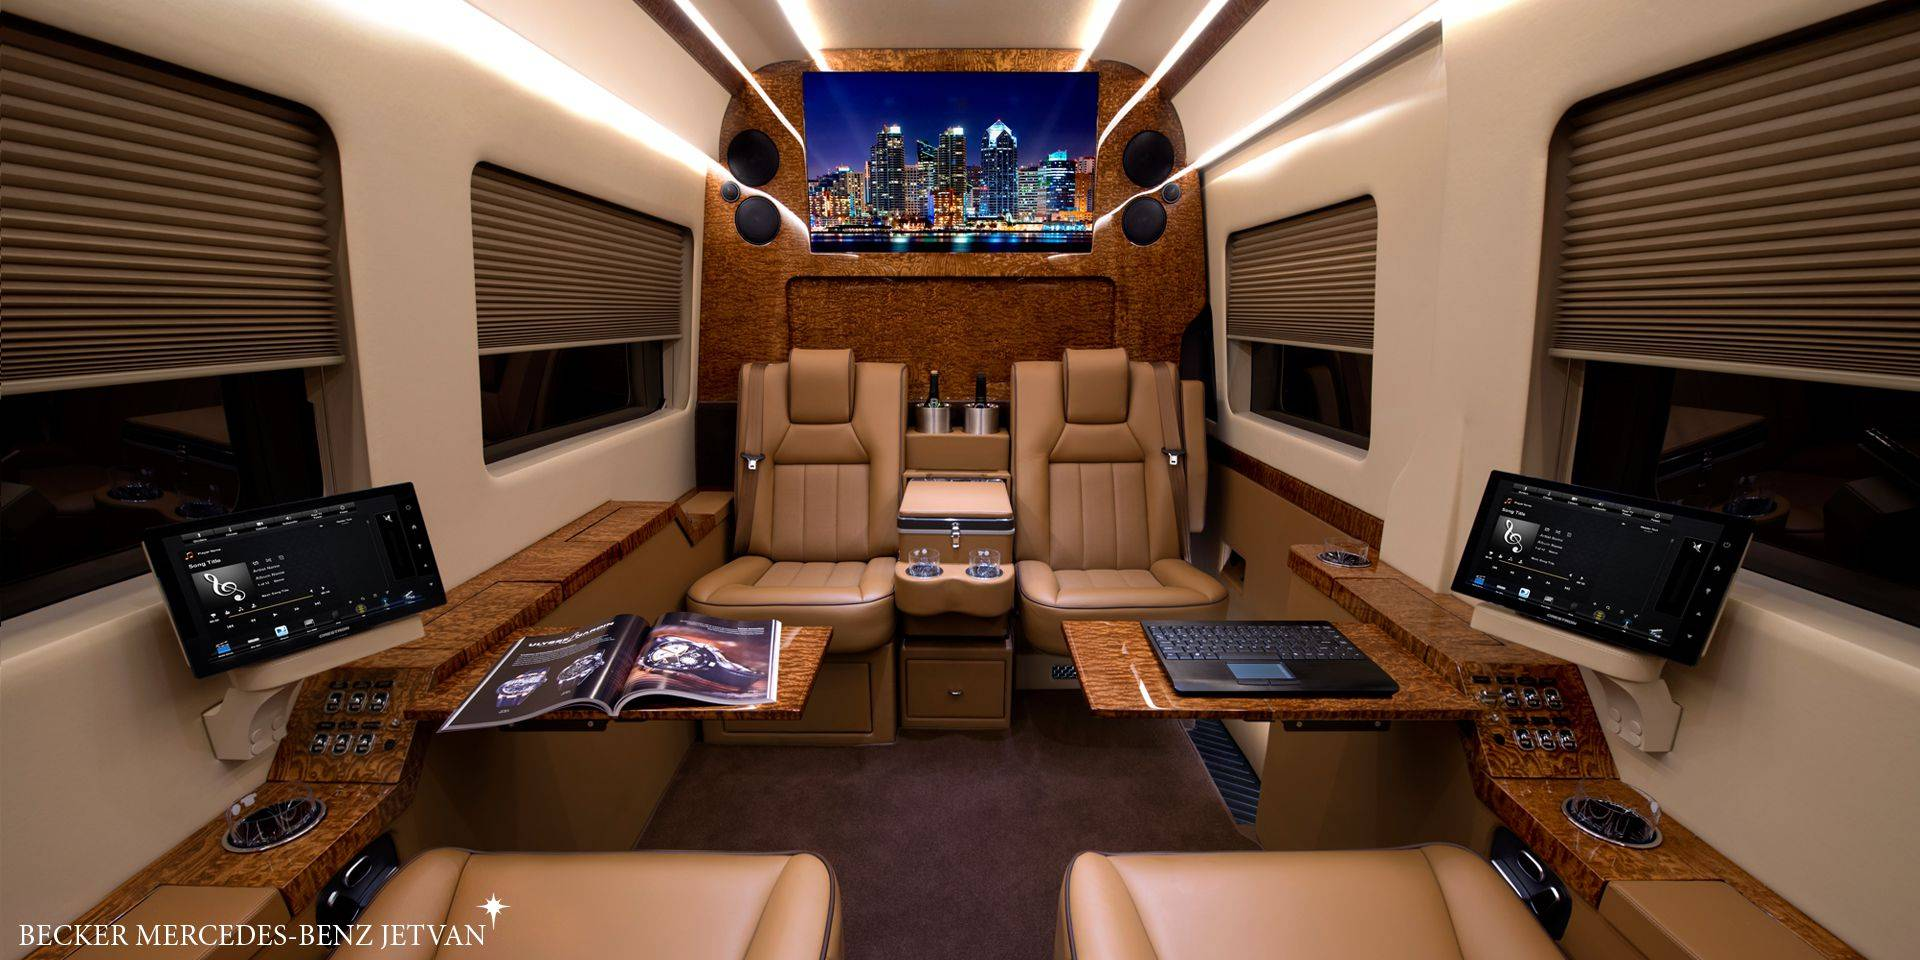 Peek Inside These Luxury Vans For The Rich And Famous